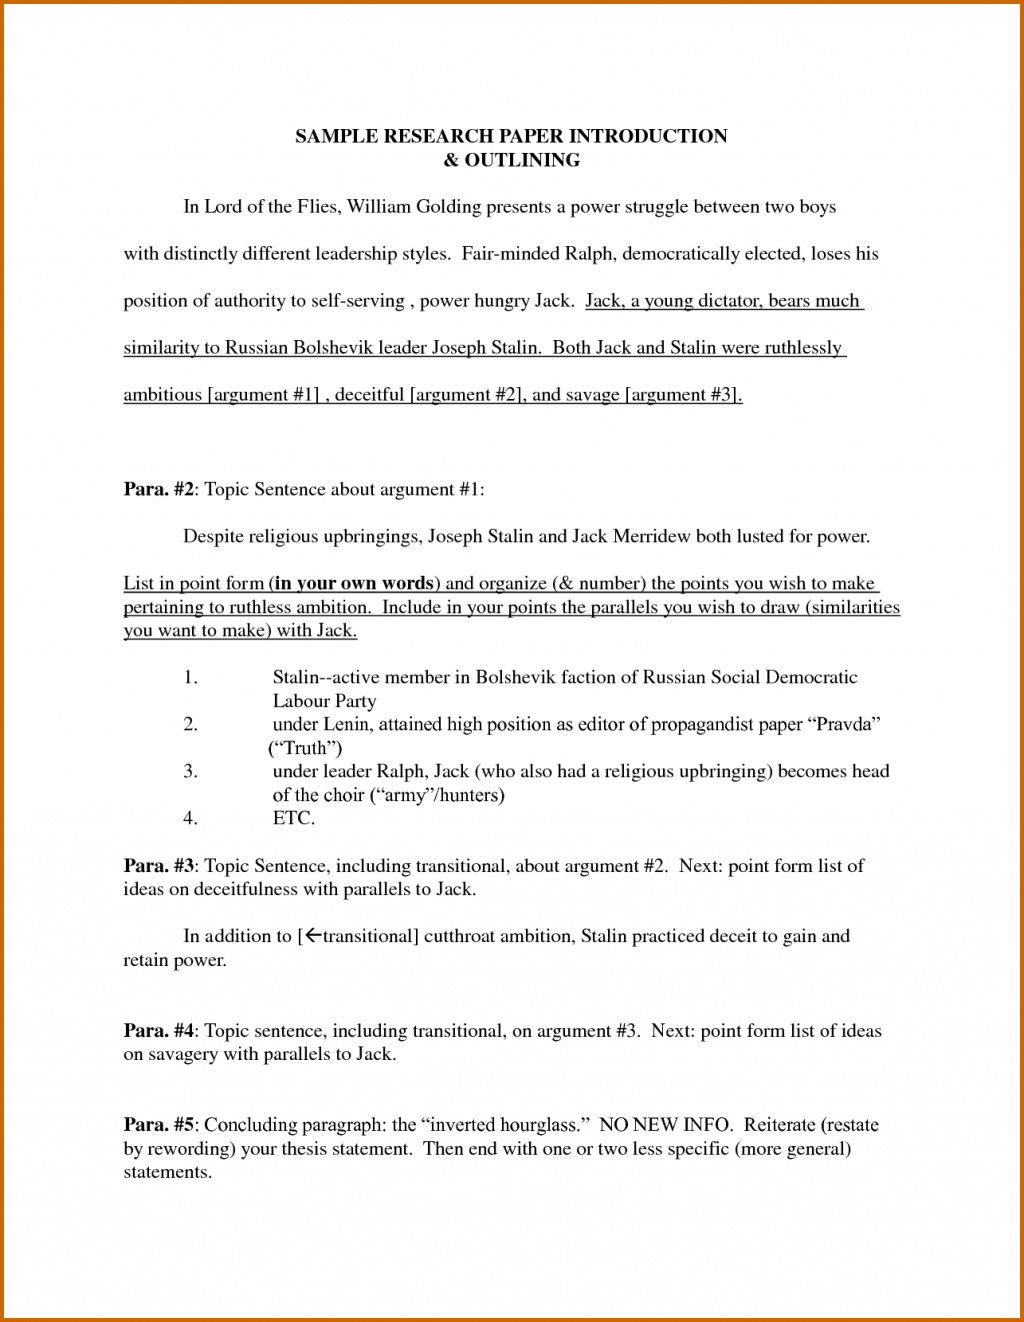 009 Introduction For Term Paper Sample How Do You Write Good Amazing A Research Paragraph Large